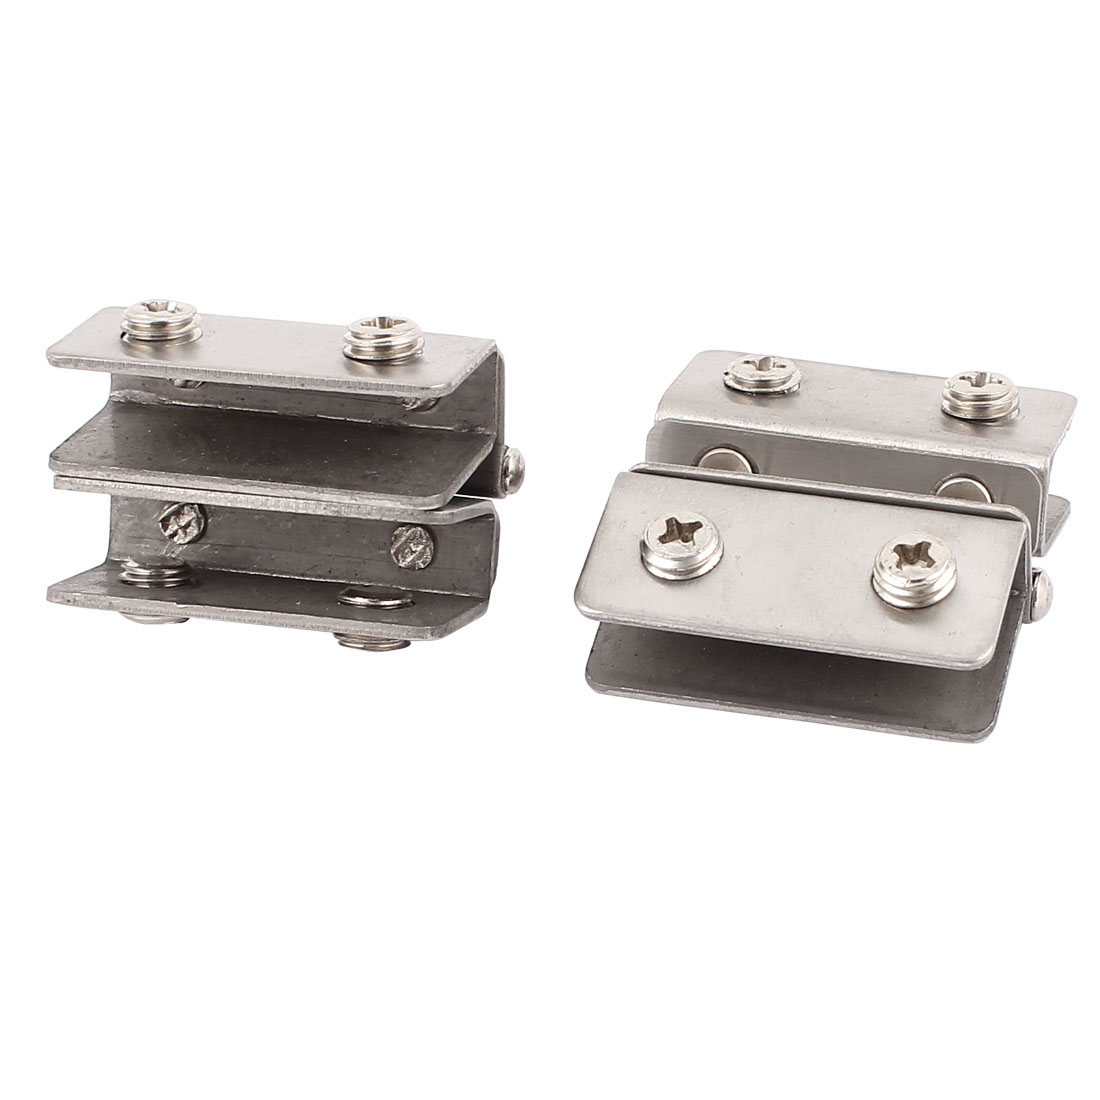 8mm Thickness Rectangle Shaped Glass Clip Clamp Silver Tone 2pcs